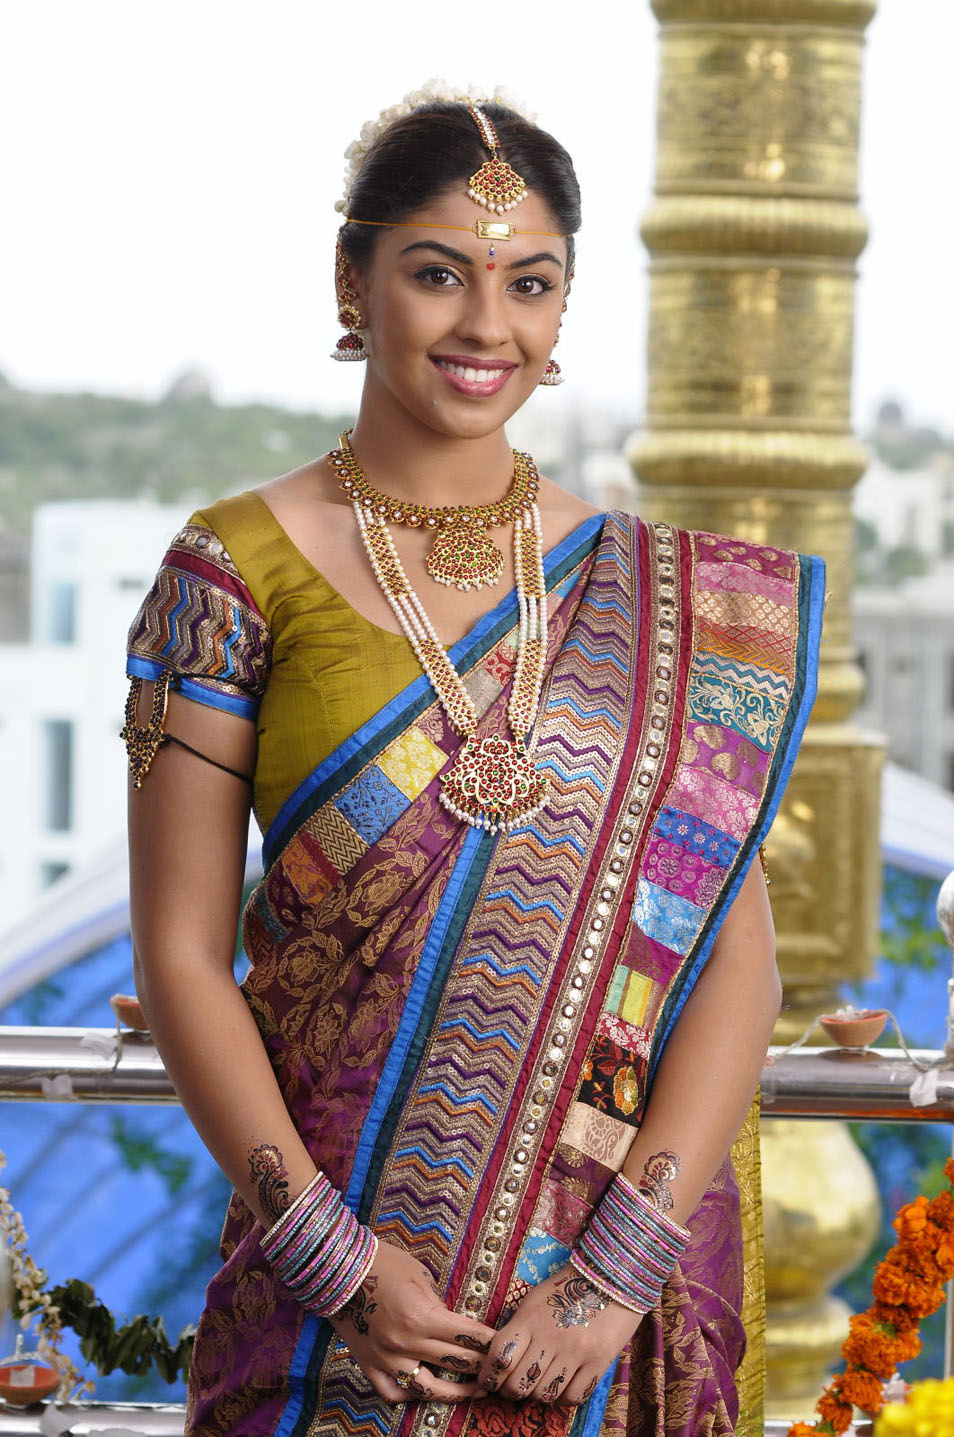 Richa Gangopadhyay  - Richa Gangopadhyay in Trdiotional South Indian Wear